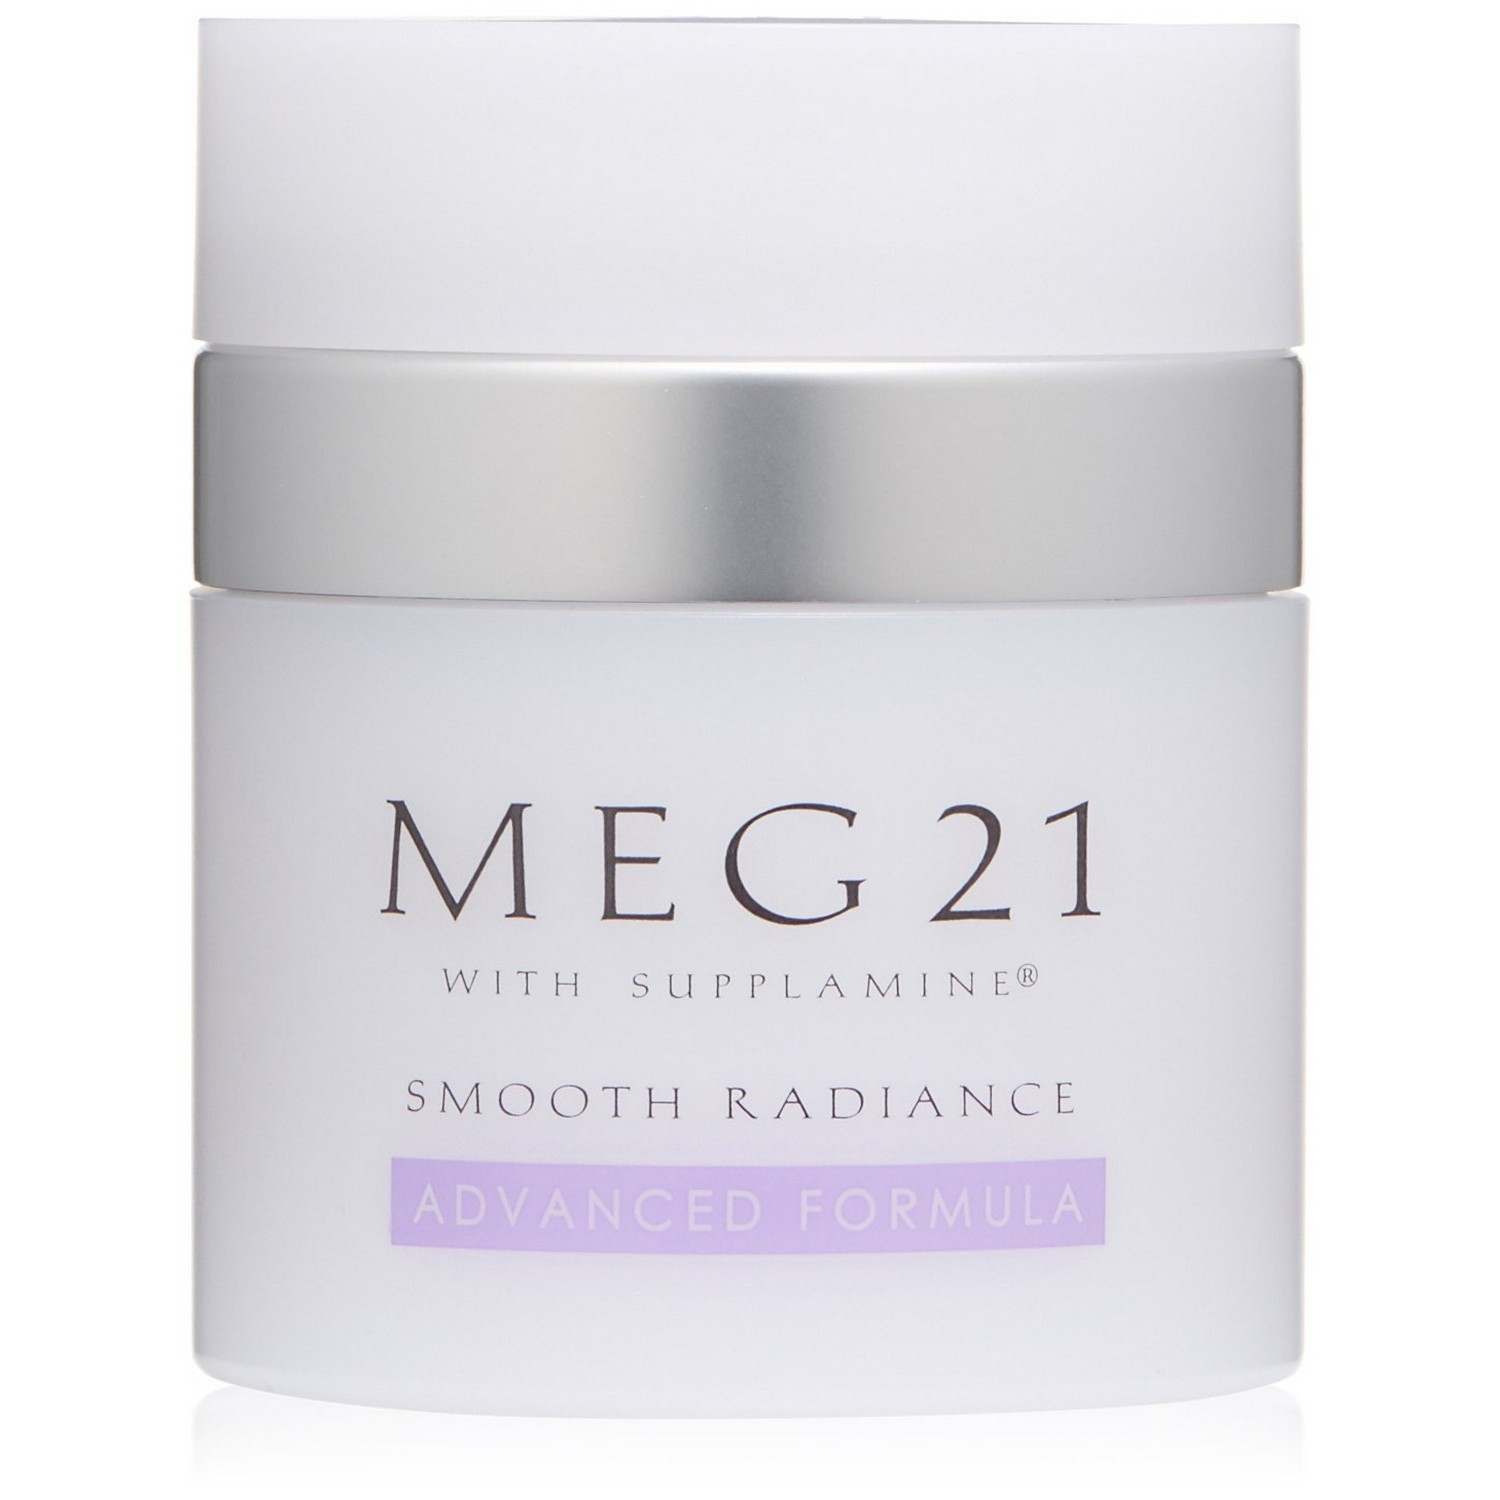 MEG 21 SMOOTH RADIANCE ADVANCED FORMULA (1.7 oz / 50 g)